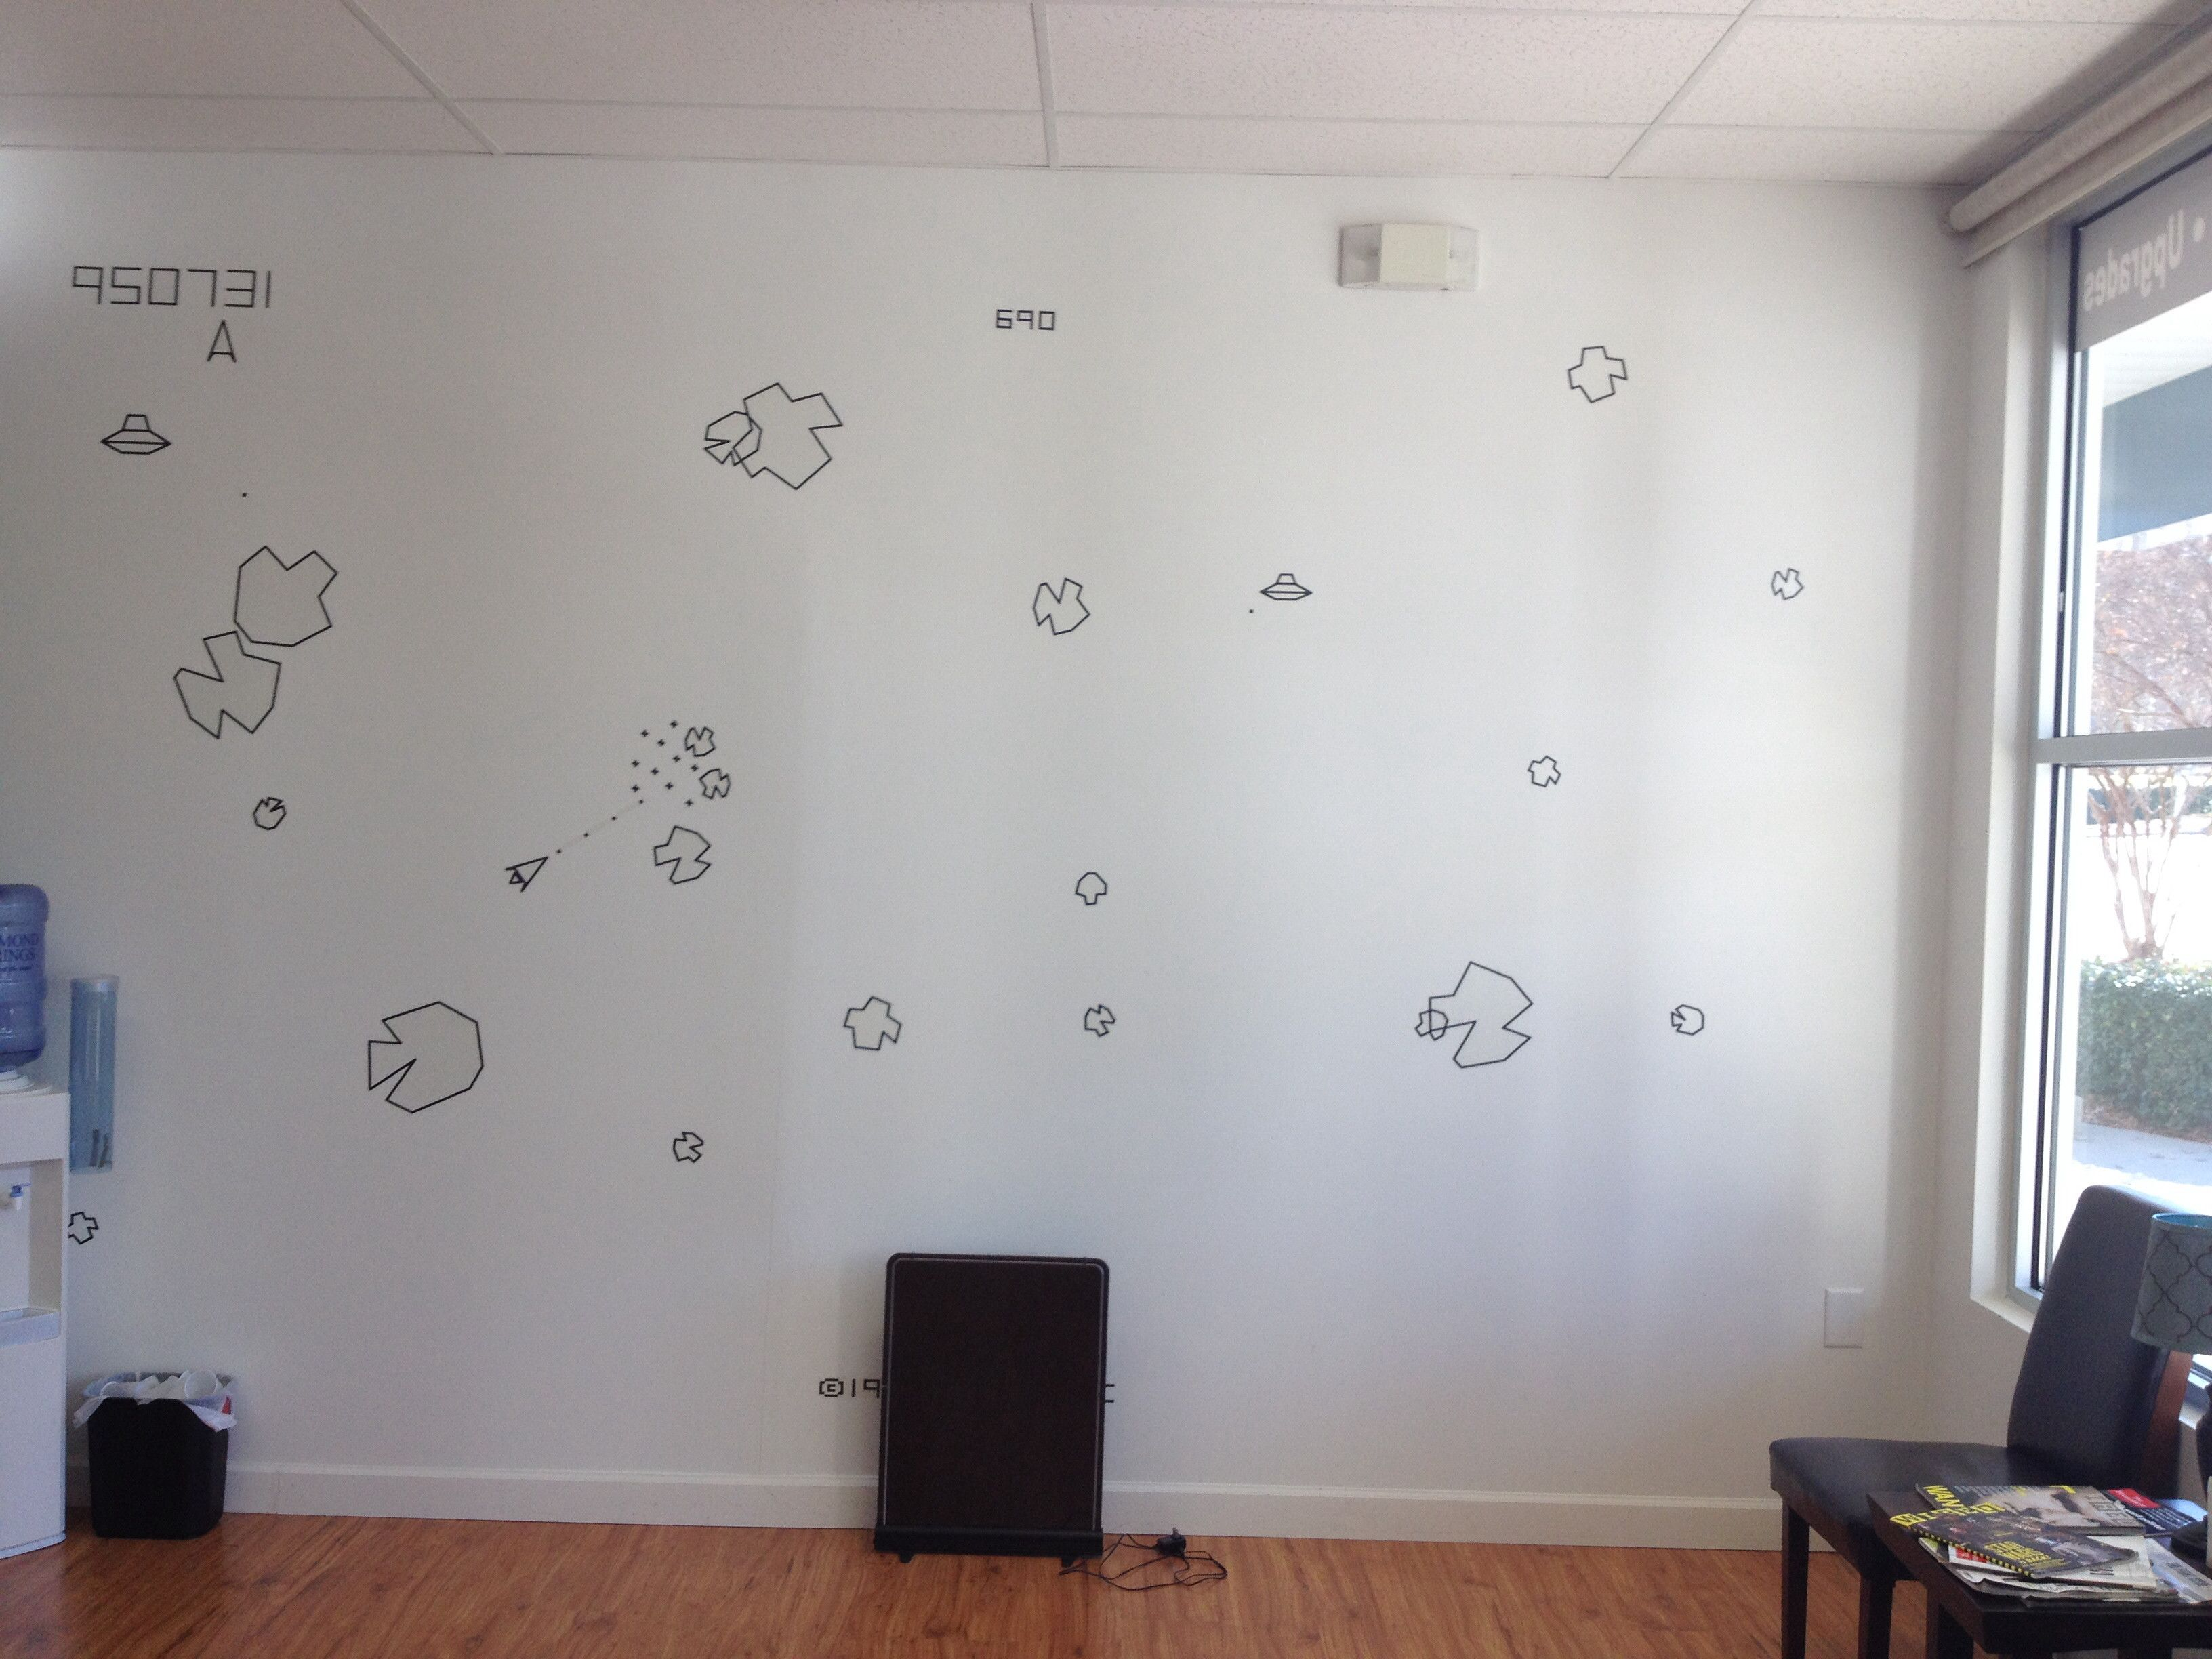 Asteroids Inspired Wall Via Reddit User Rayferrr Home